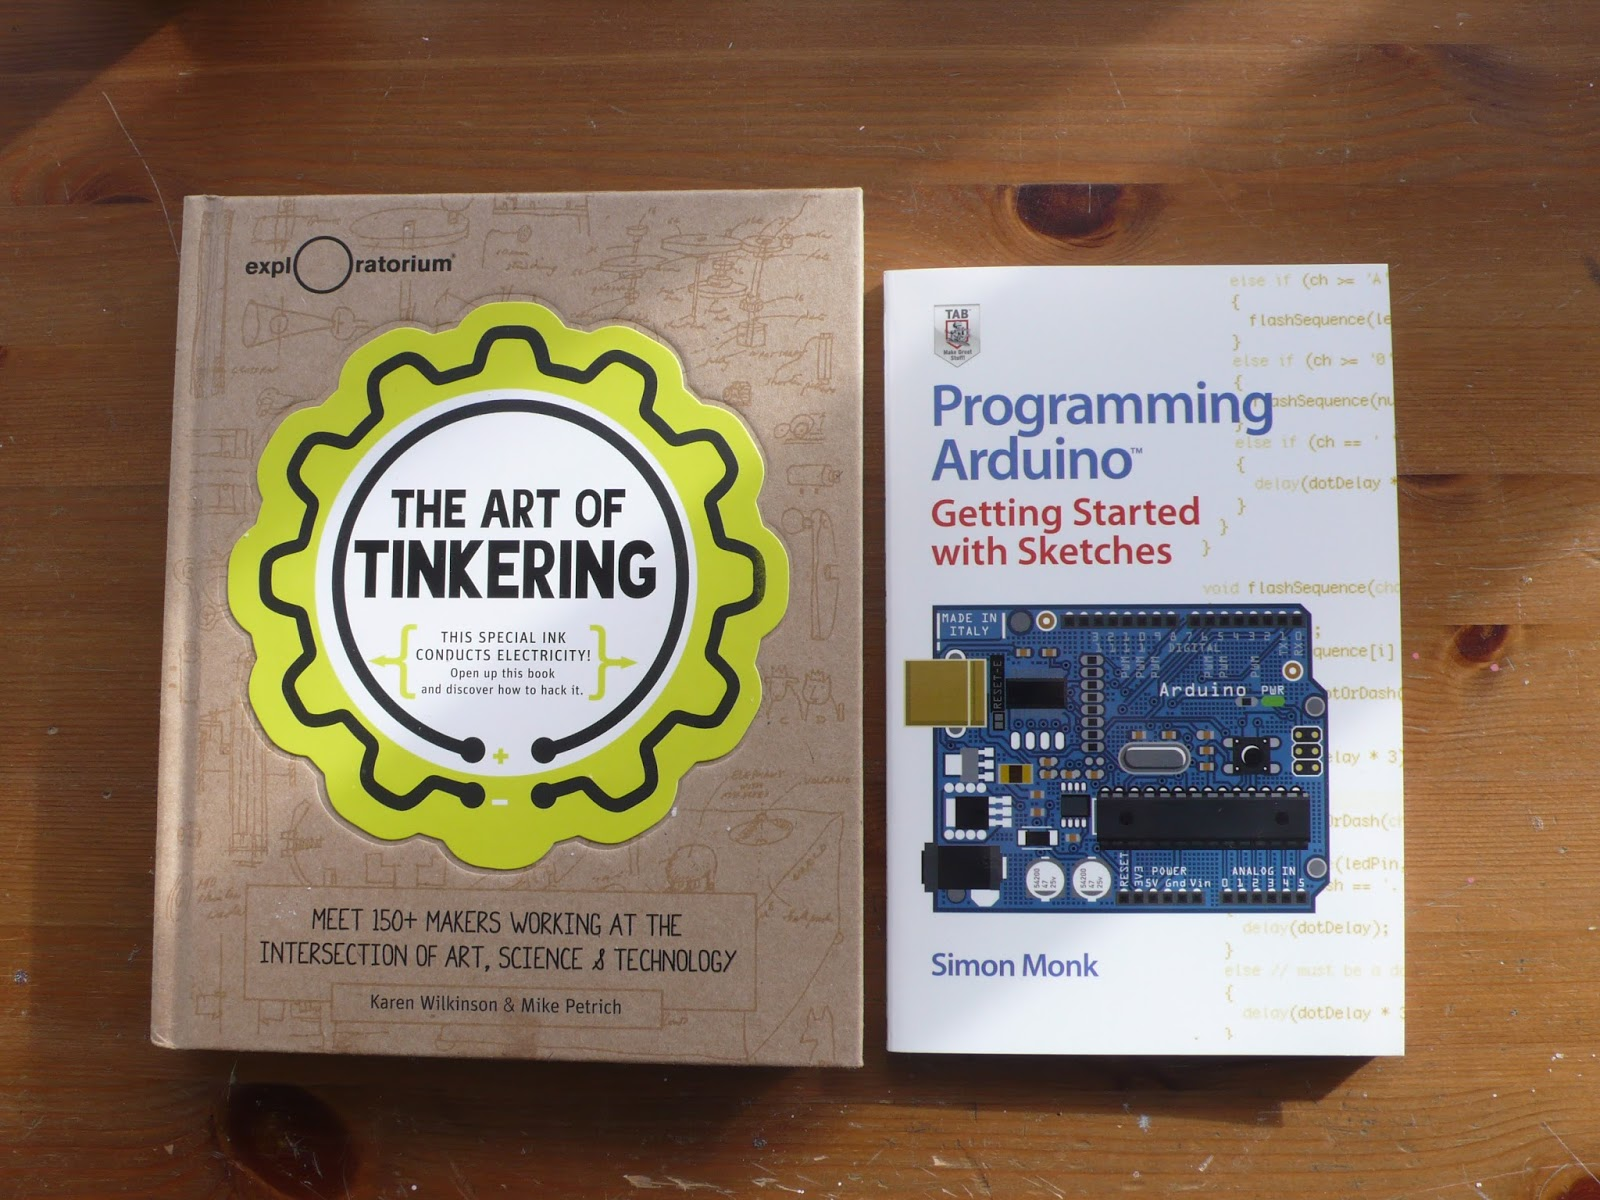 Two books, the one on the left is entitled 'The Art of Tinkering' and the other book on the right is entitled 'Programming Arduino'.